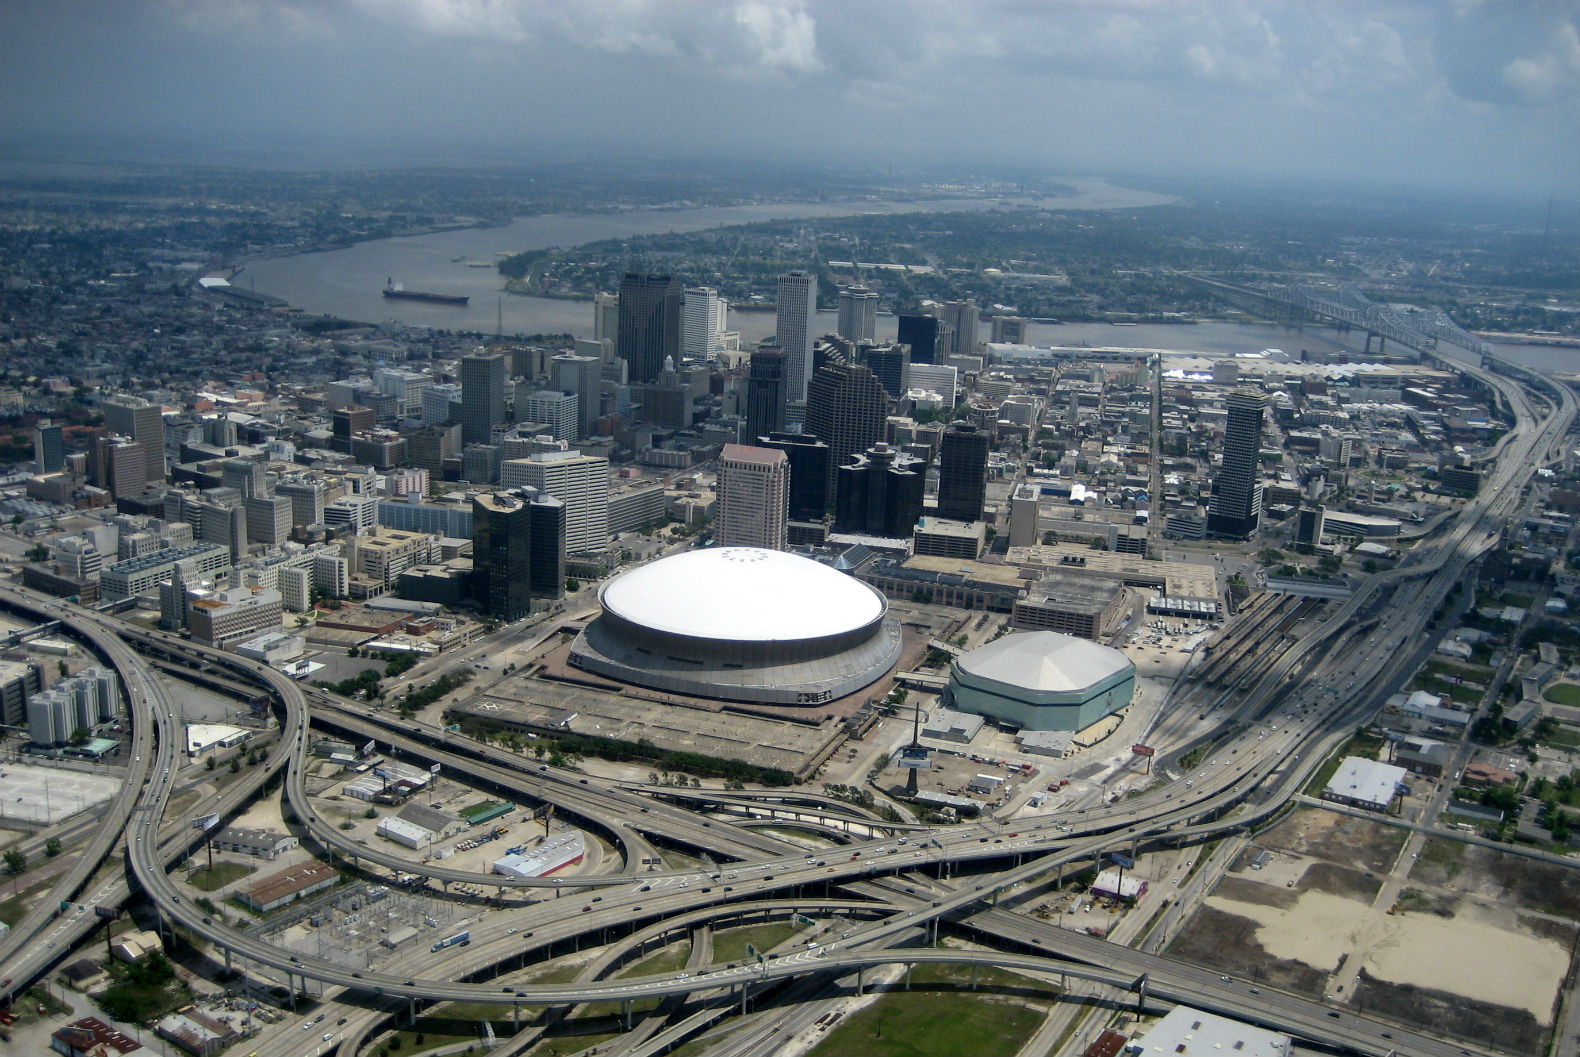 hurricane katrina new orleans In the days after hurricane katrina, new orleans was a poisonous wasteland entire neighborhoods were deserted or submerged, and the water had turned black, a noxious .